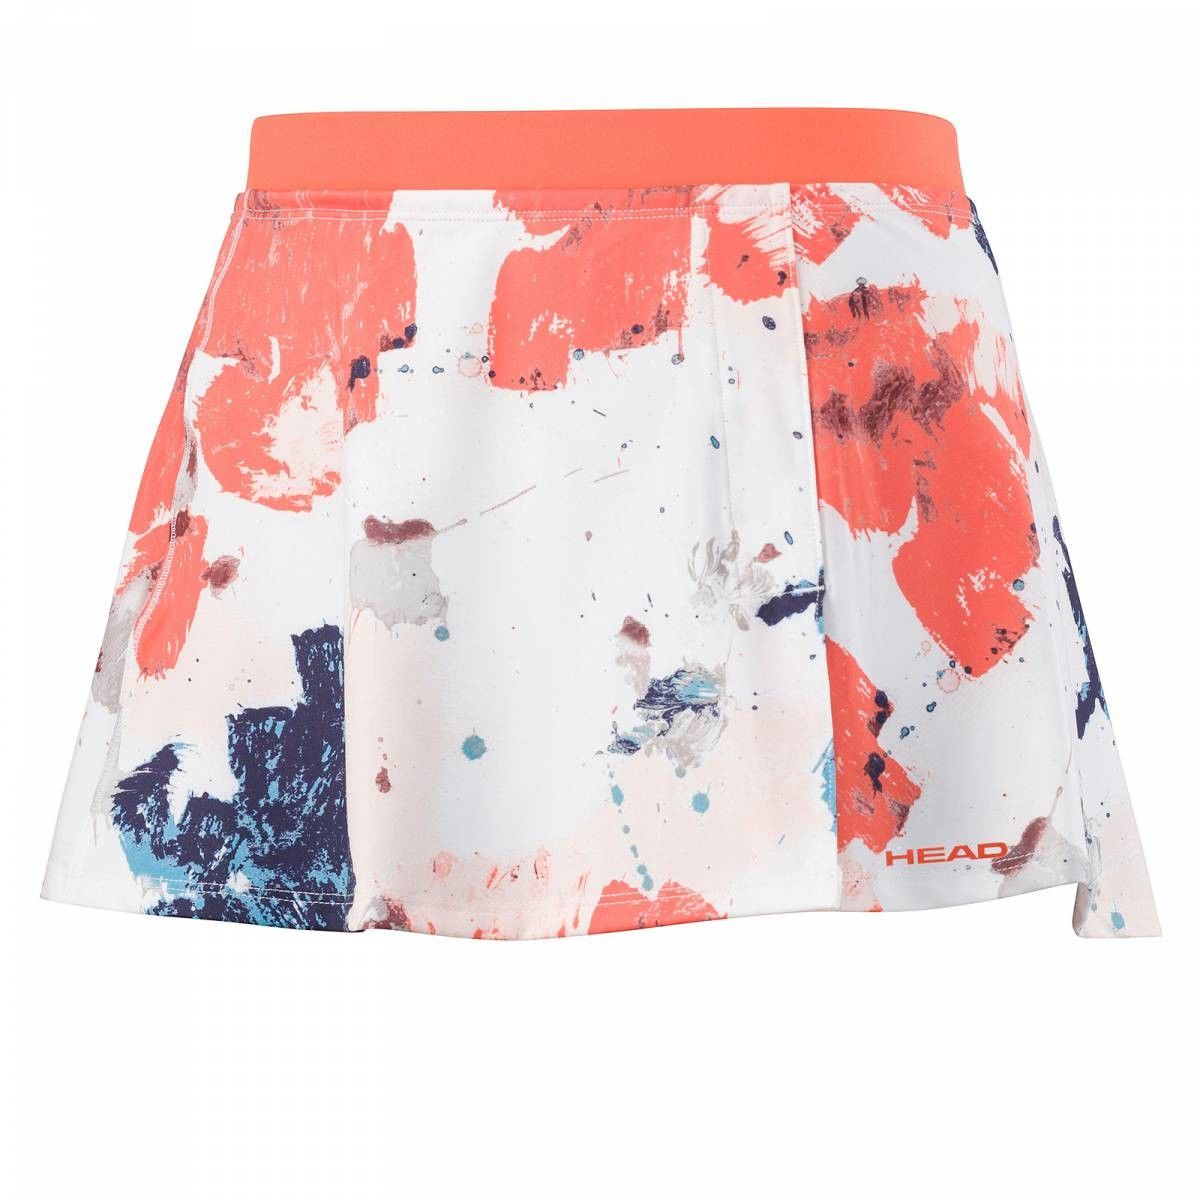 Head Vision Graphic Skirt W - coral 814487-CO